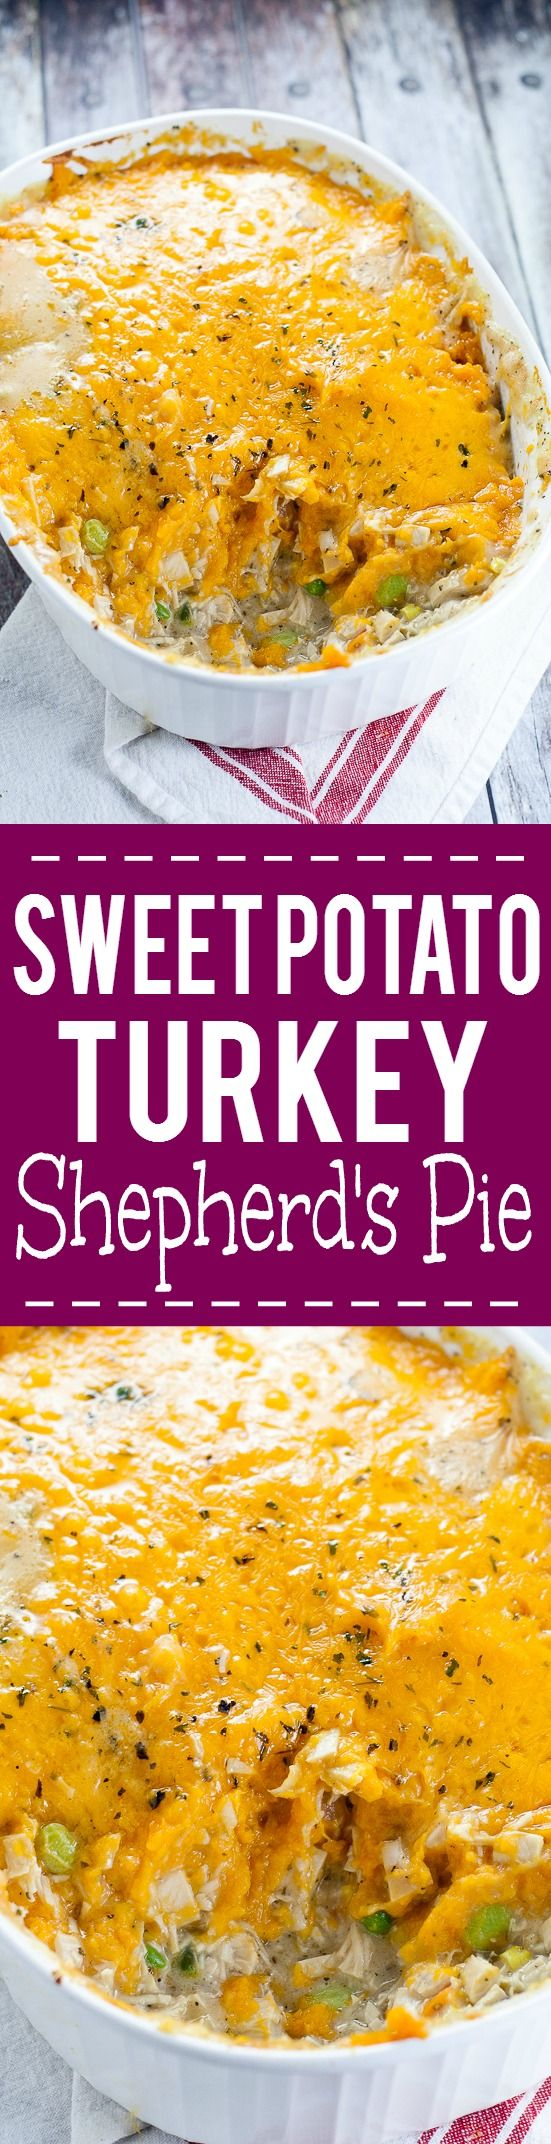 Sweet Potato Turkey Shepherd's Pie recipe with mashed sweet potatoes and turkey and veggies in a creamy gravy.Cozy, sweet and savory, this Sweet Potato Turkey Shepherd's Pie recipe is a great way to use up Thanksgiving leftovers in a warm delightful casserole.